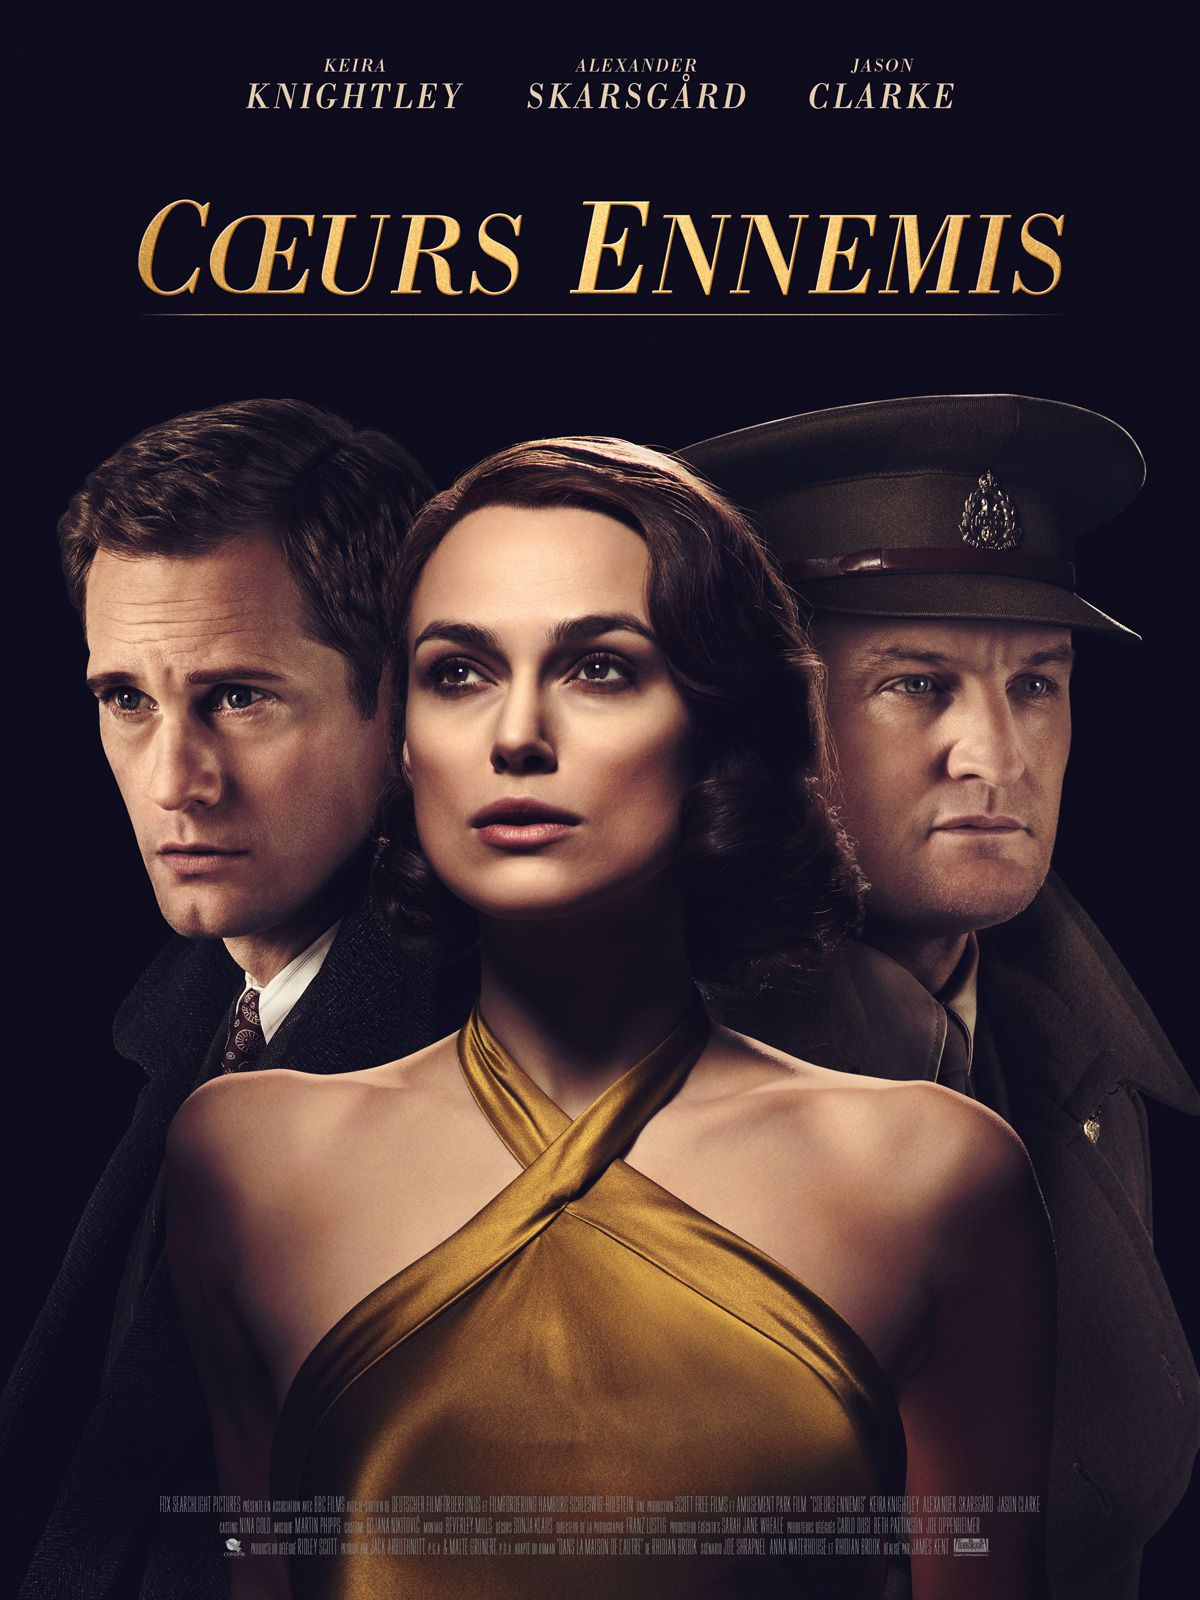 Affiche Poster coeurs ennemis aftermath disney fox